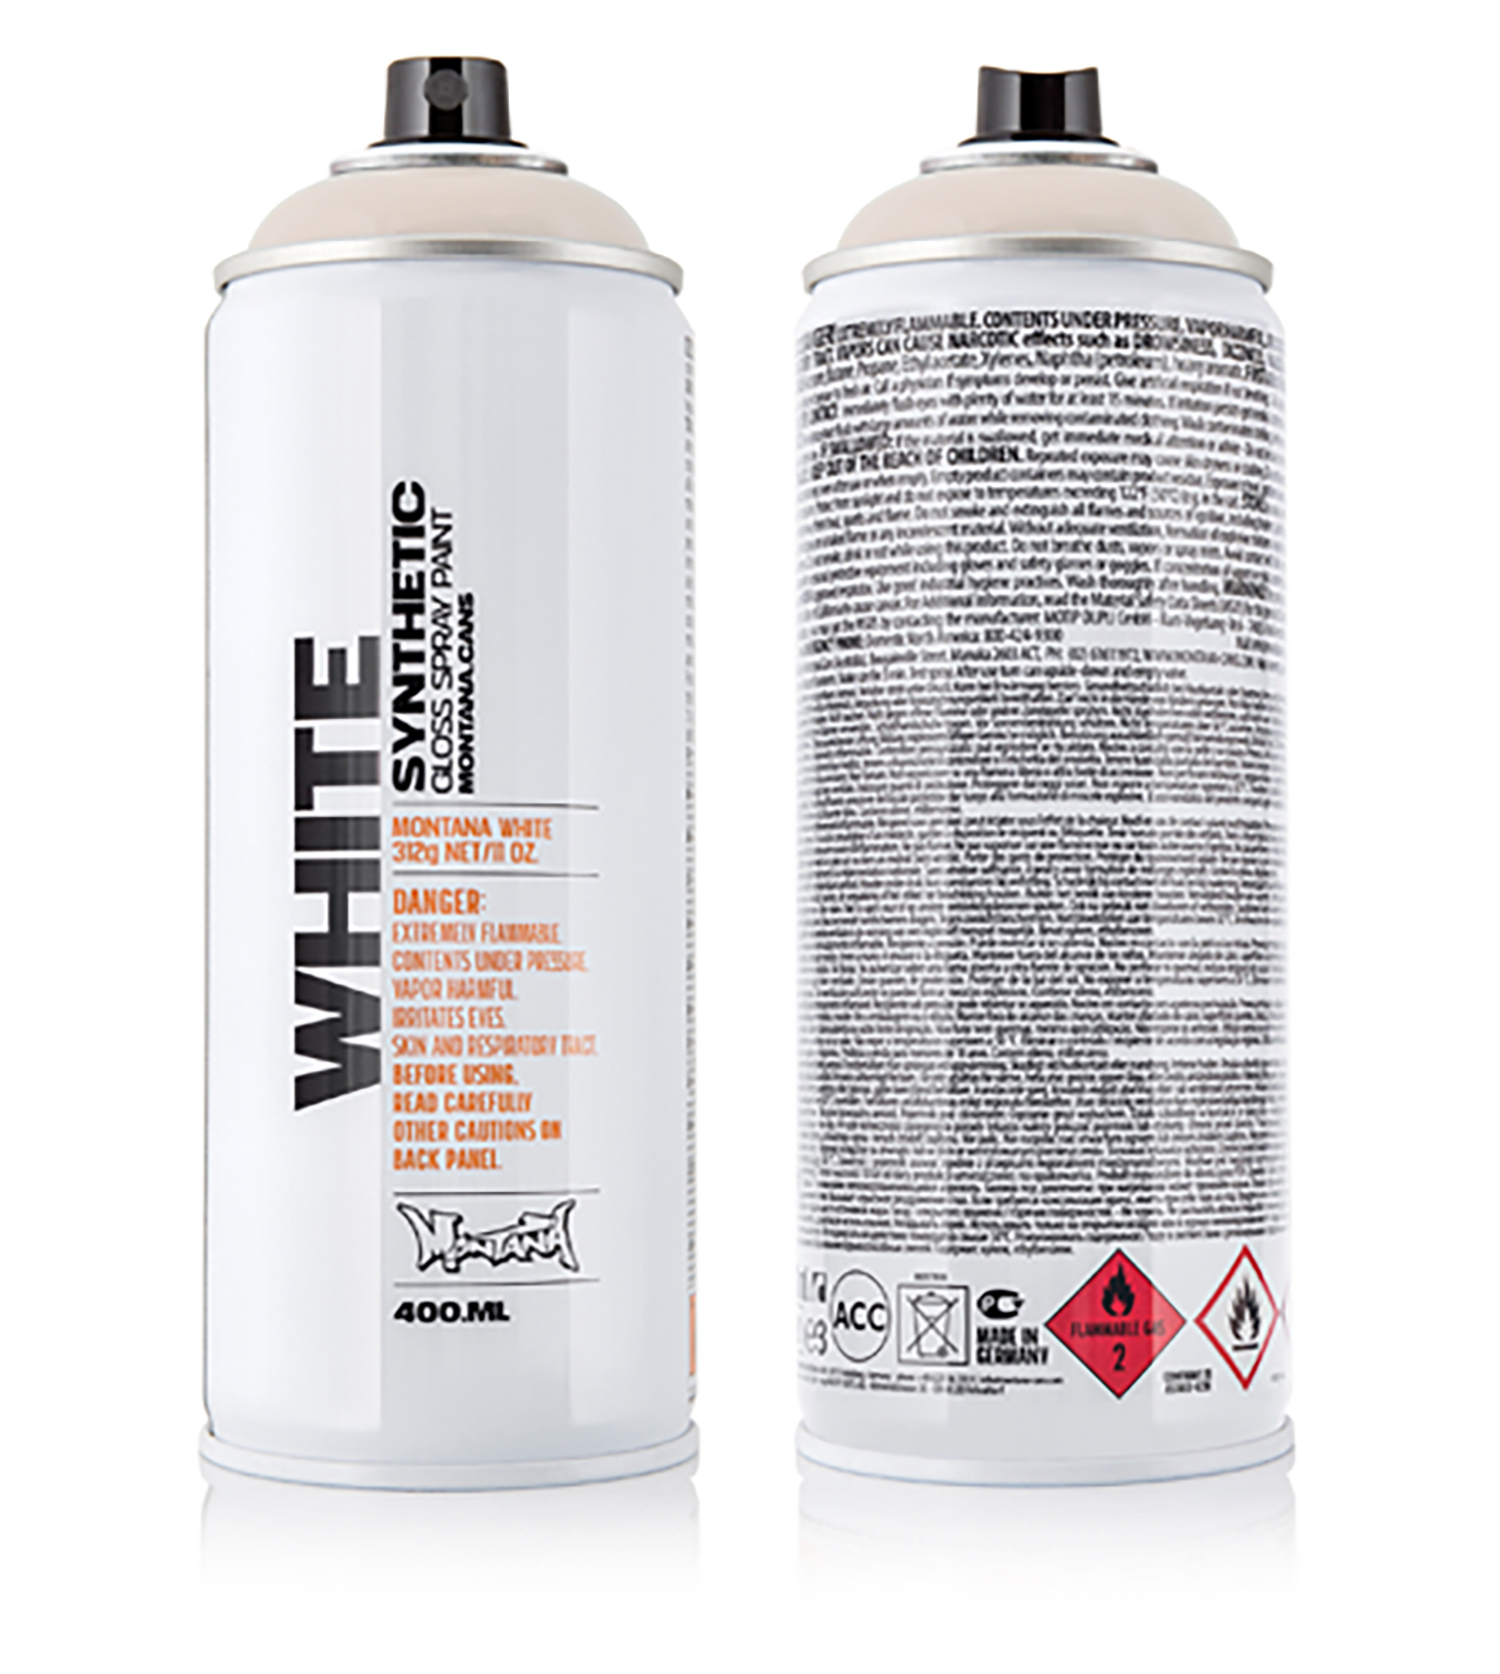 MONTANA-WHITE-SPRAY-400ML-9100